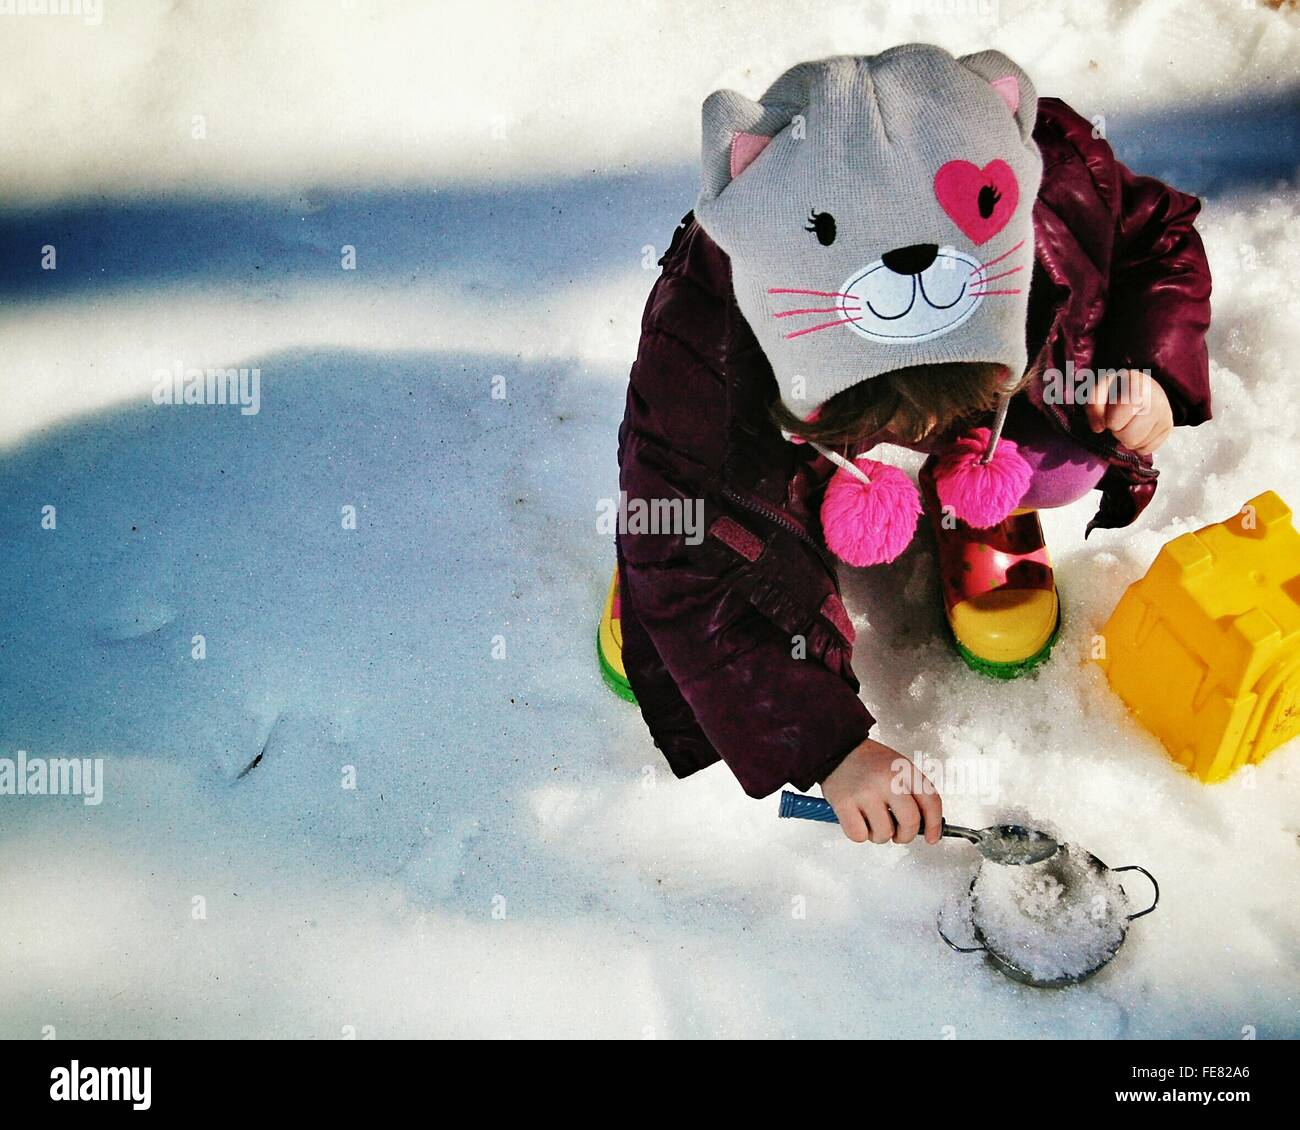 High Angle View Of Little Girl Playing In Snow - Stock Image